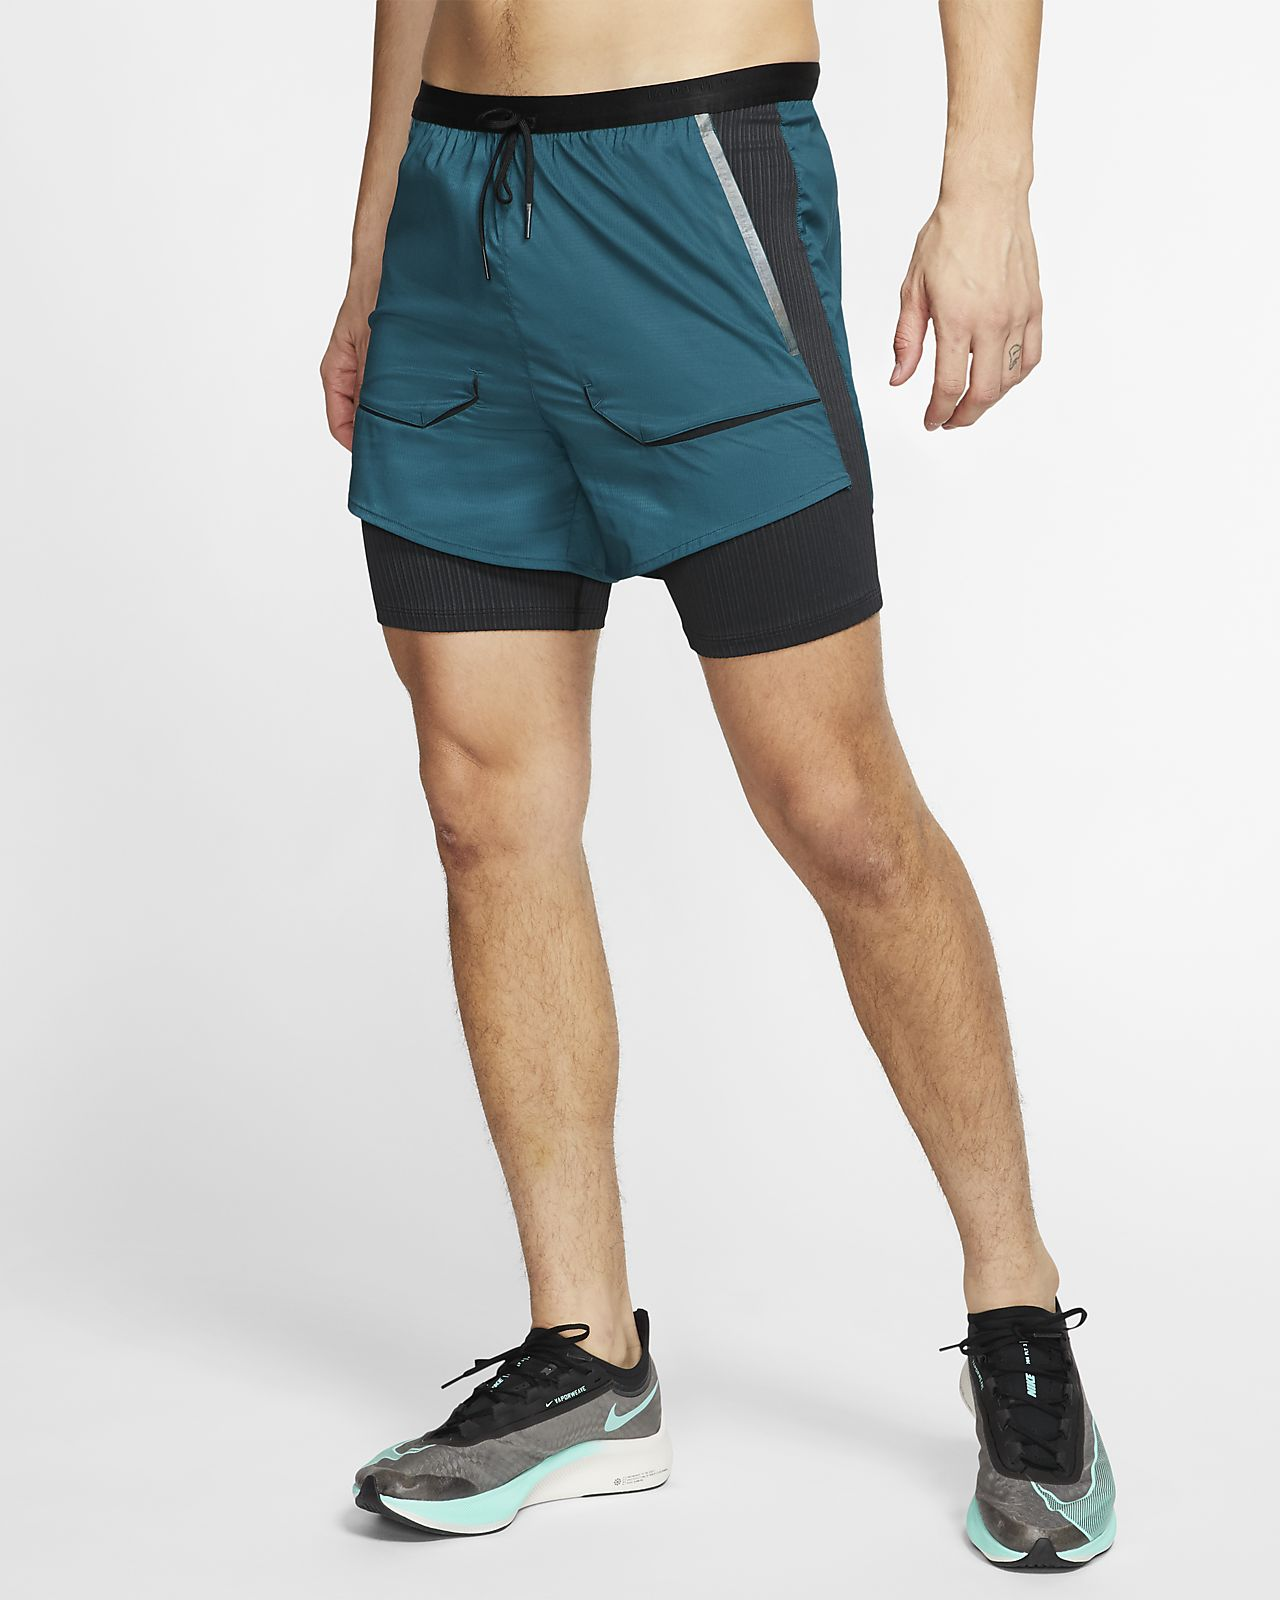 Nike Tech Pack Men's 2-In-1 Running Shorts